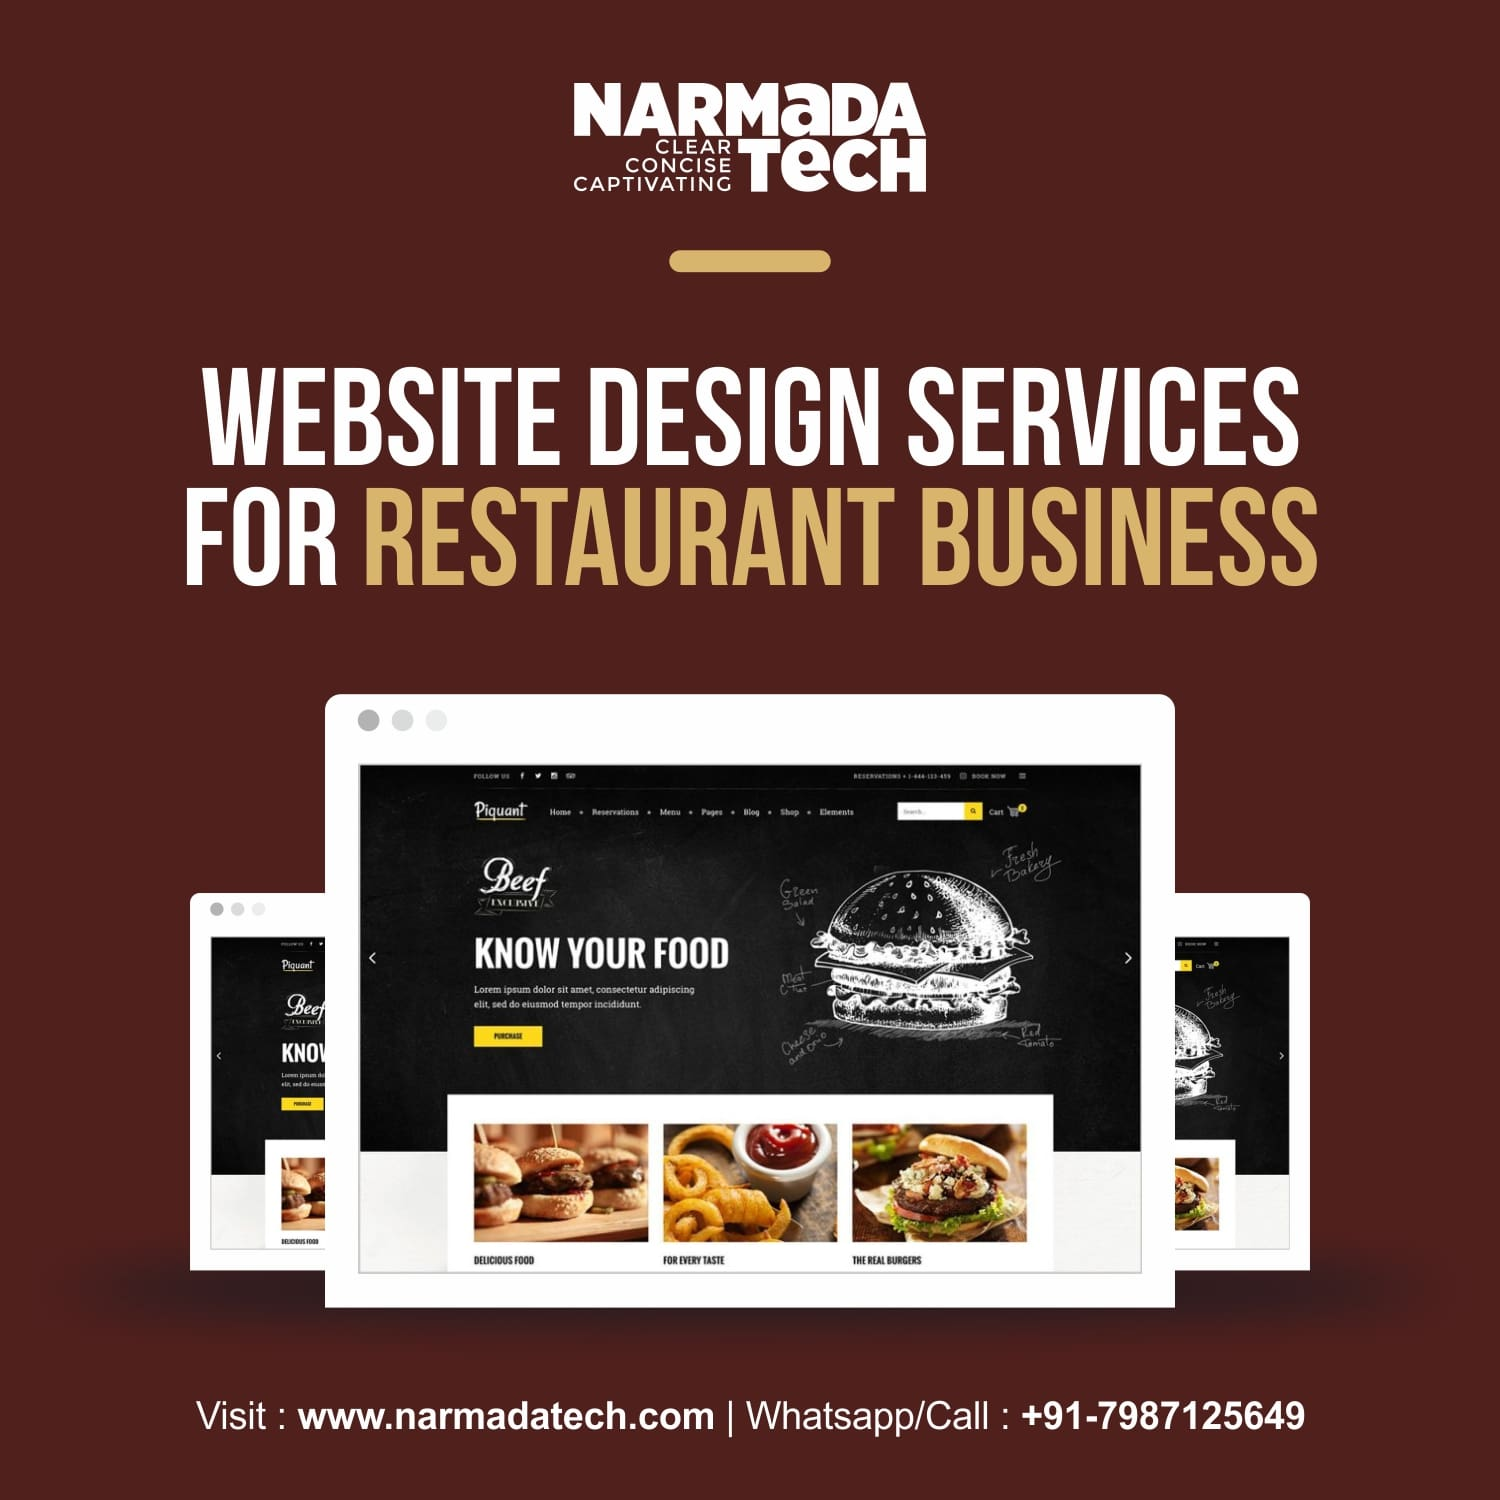 Website Design Services for Restaurant Businesses